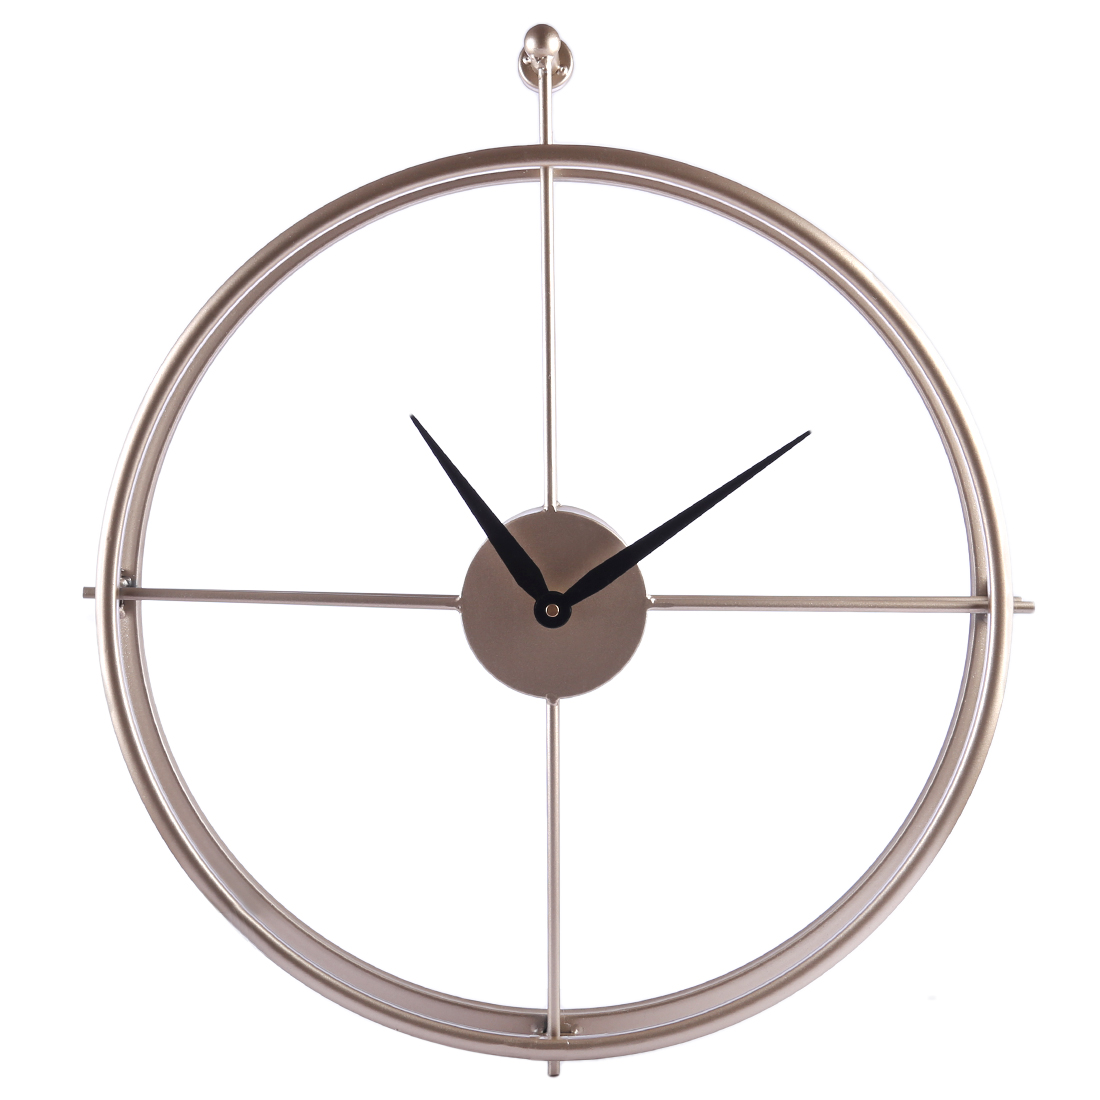 55cm Large Brief European Style Silent Iron Wall Clock Modern Design For Home Office Decor Hanging Wall Watch Clocks55cm Large Brief European Style Silent Iron Wall Clock Modern Design For Home Office Decor Hanging Wall Watch Clocks